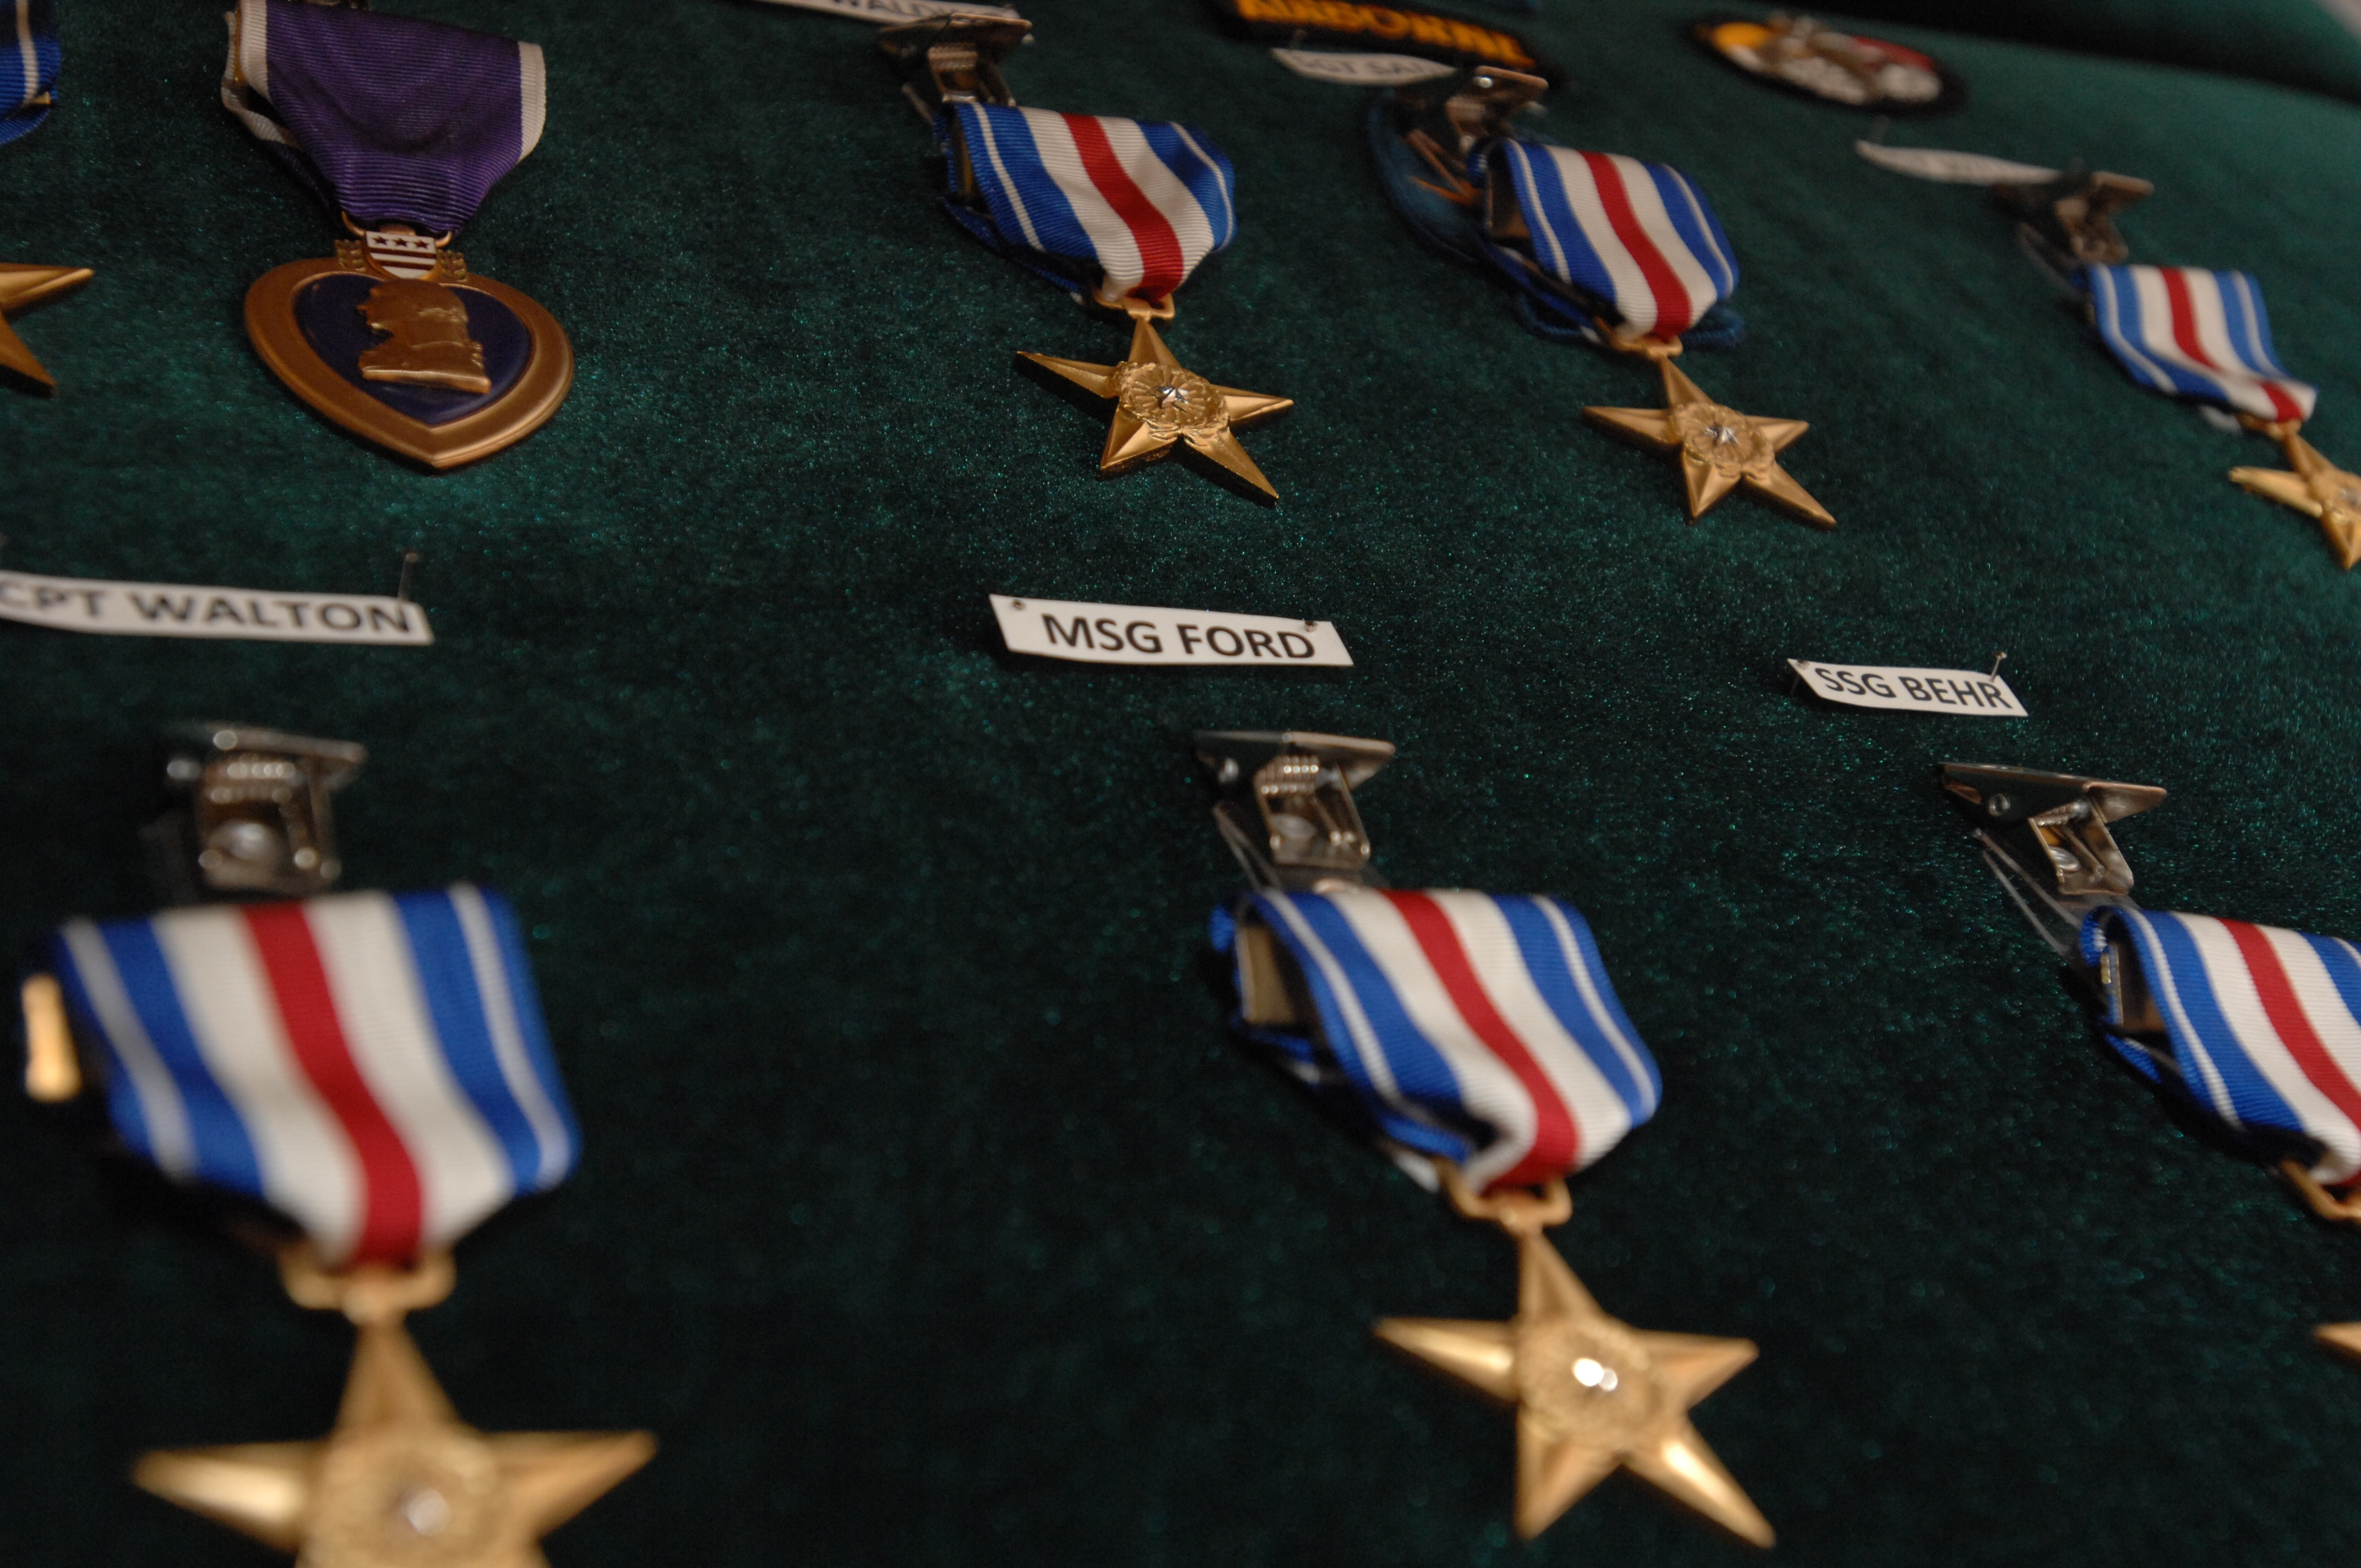 Silver Star Medals